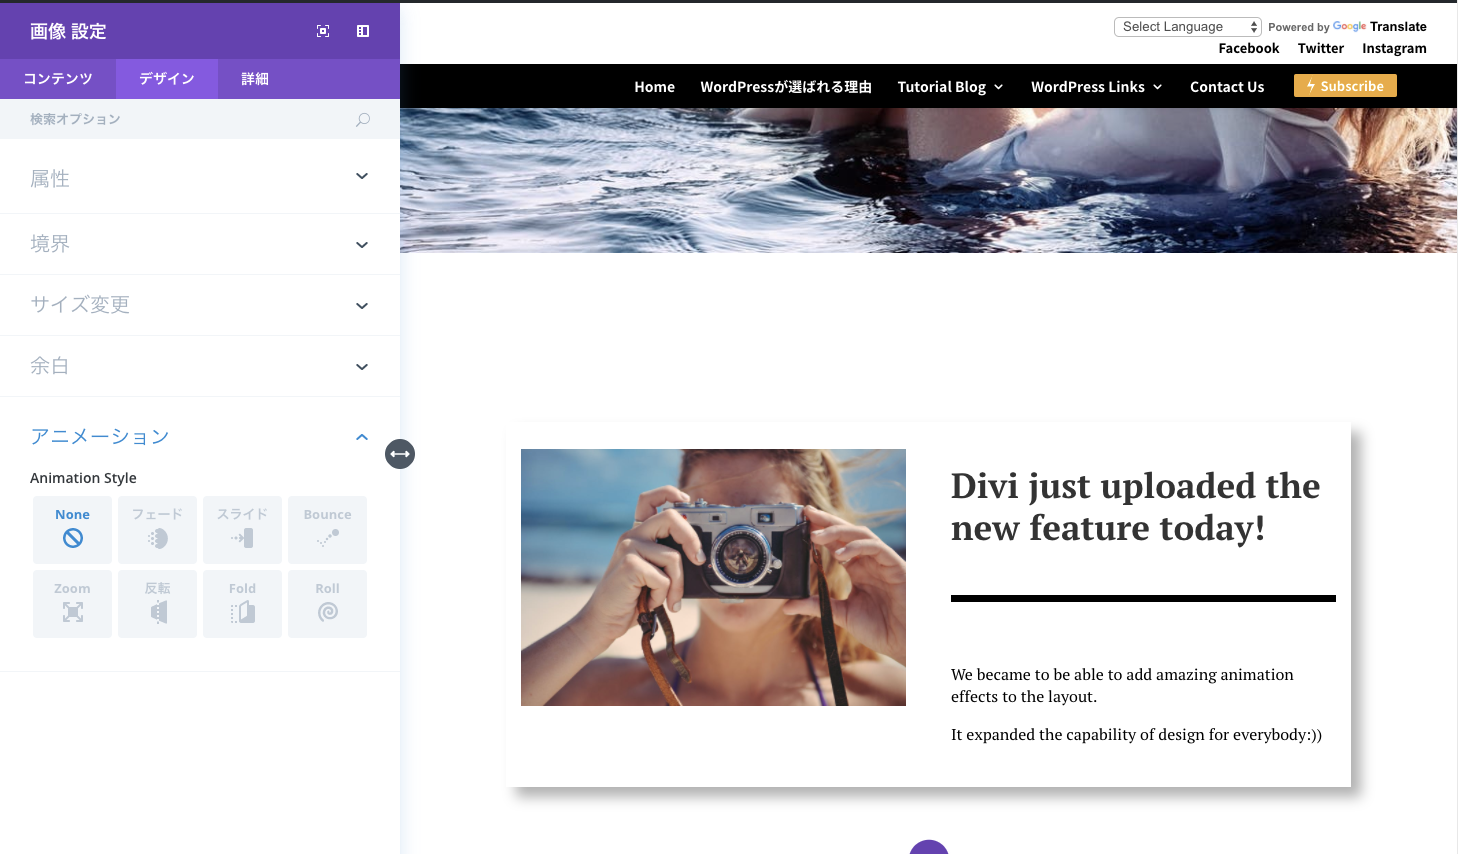 divi new feature demo screenshot